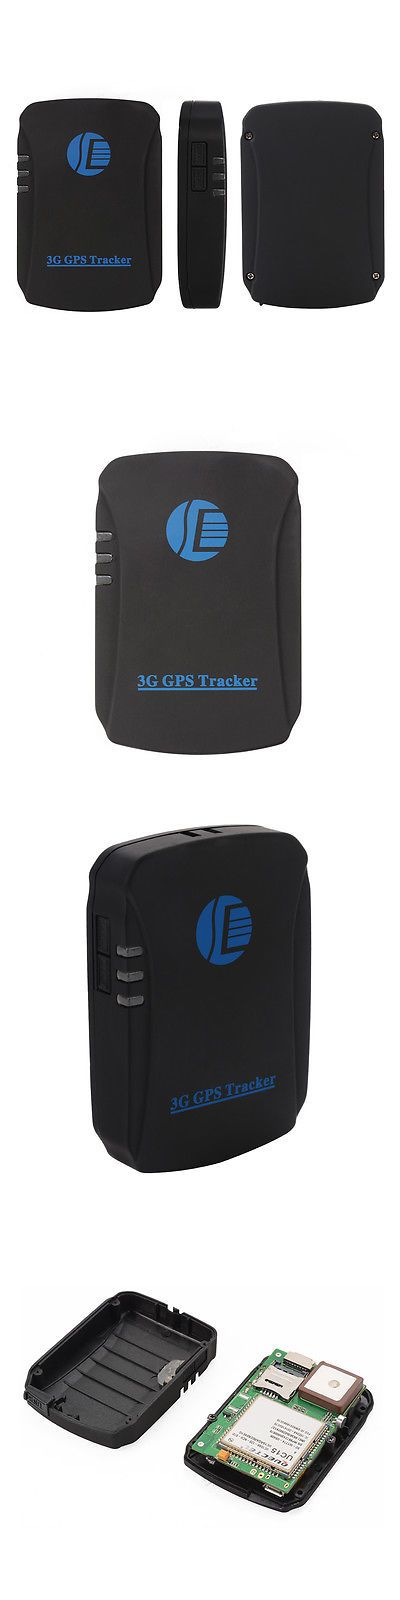 Tracking Devices: Gps Tracking Device 3G Real Time Vehicle Tracker Anti Theft Car Motorbike Ah287 -> BUY IT NOW ONLY: $57.49 on eBay!